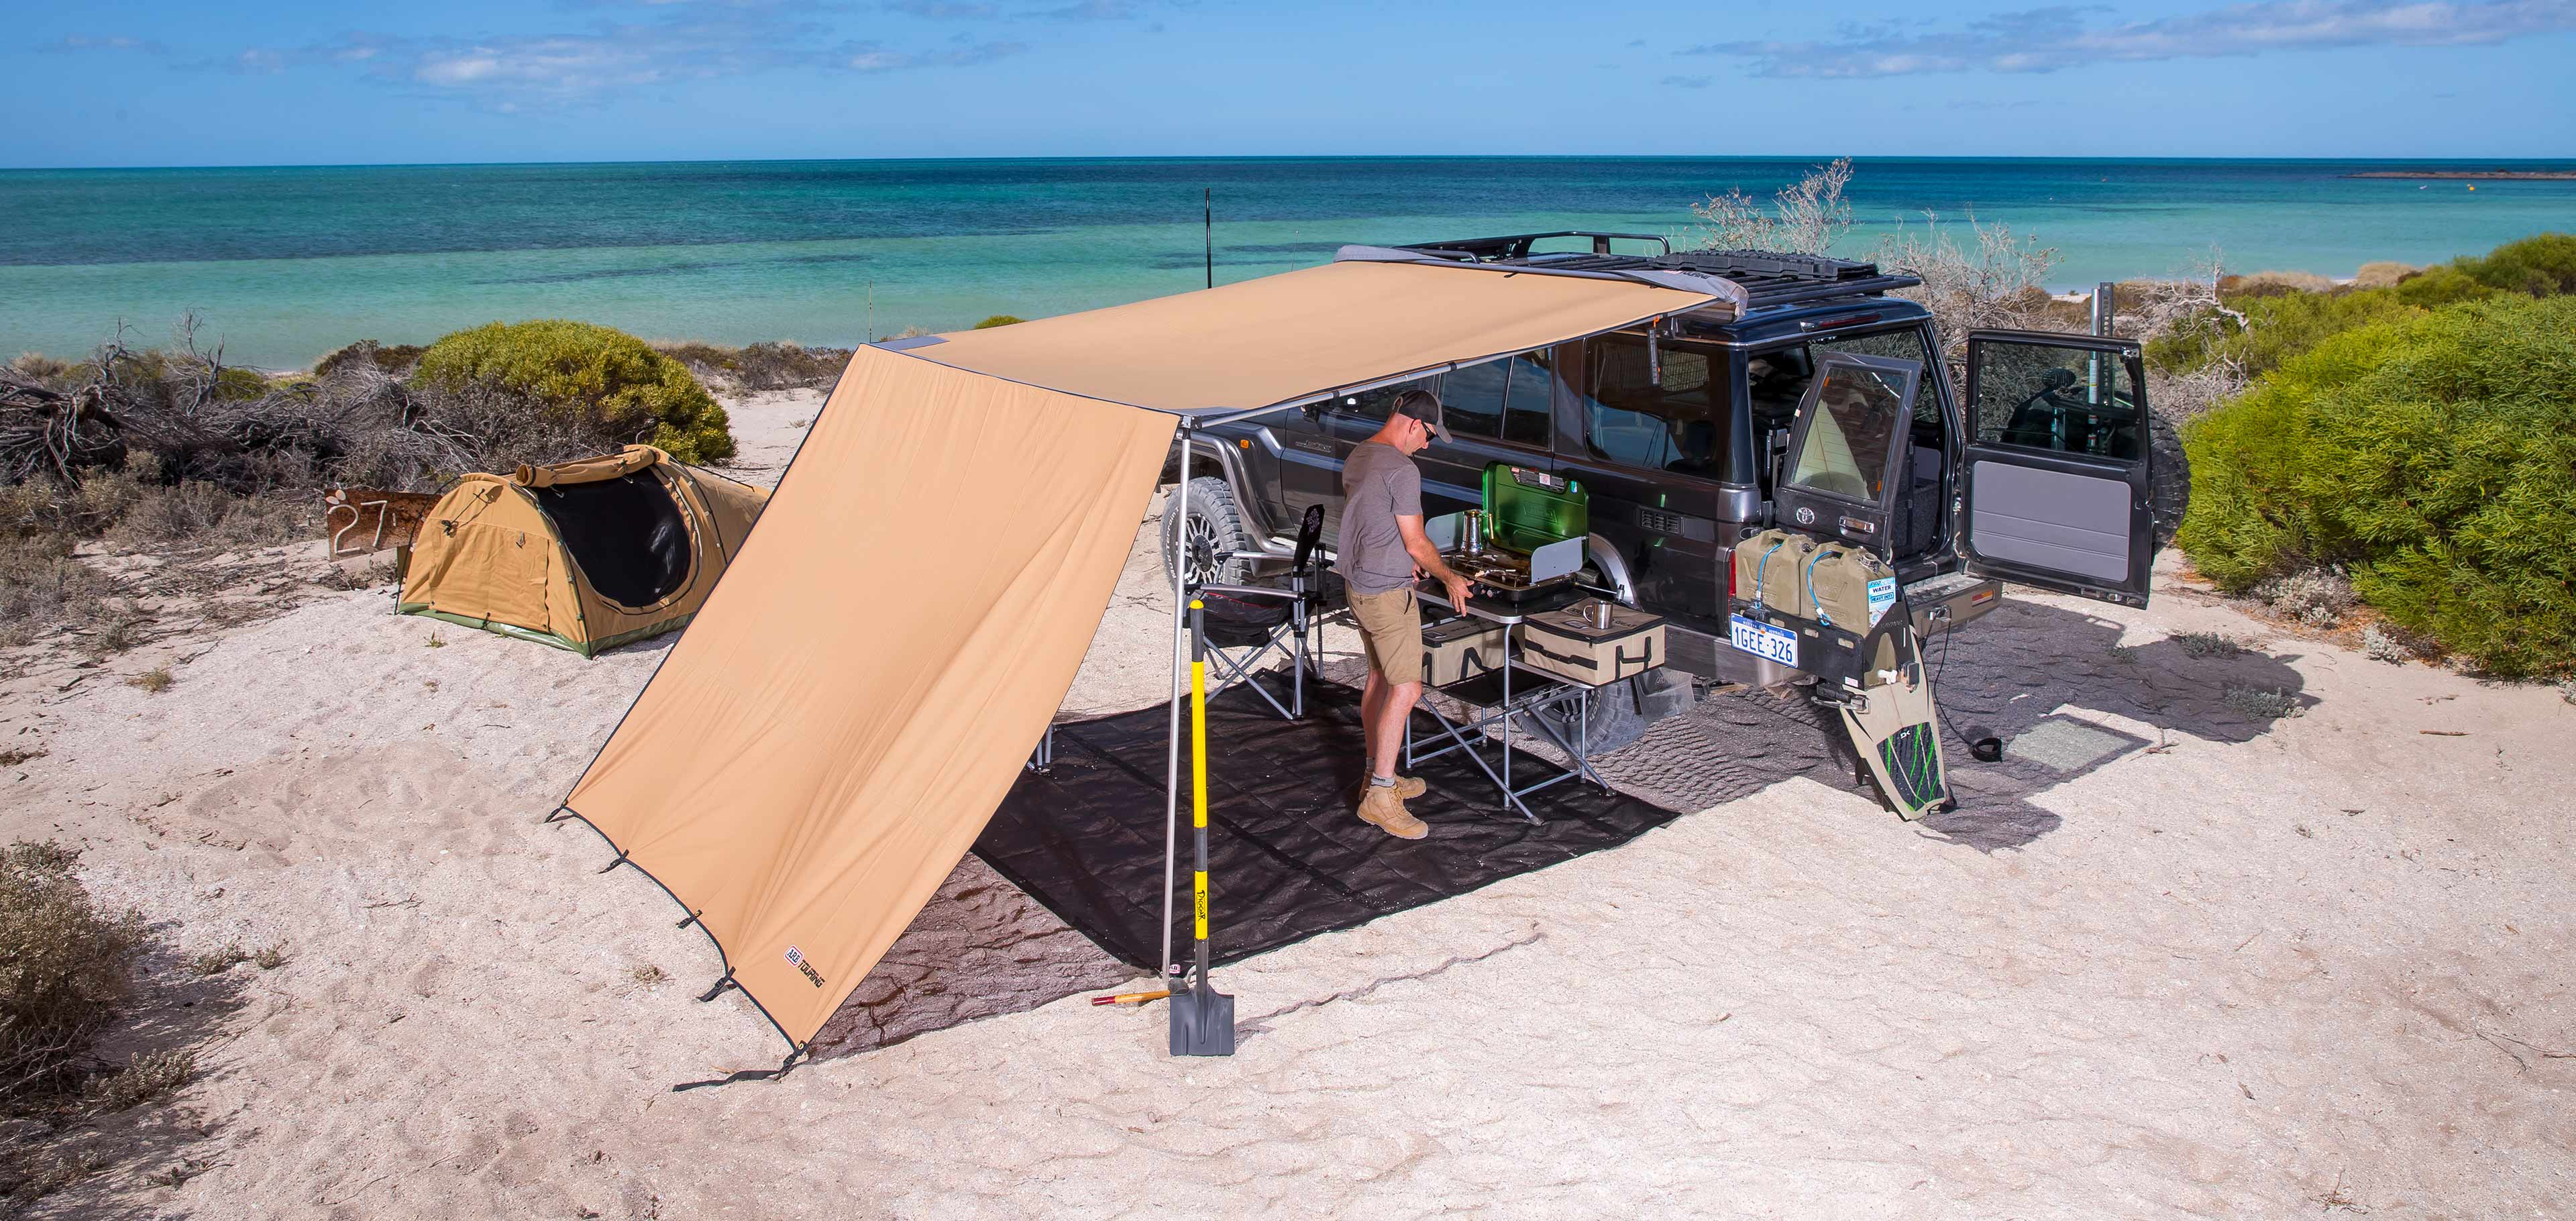 ARB Europe | Tents, Awnings & Camping ARB Europe